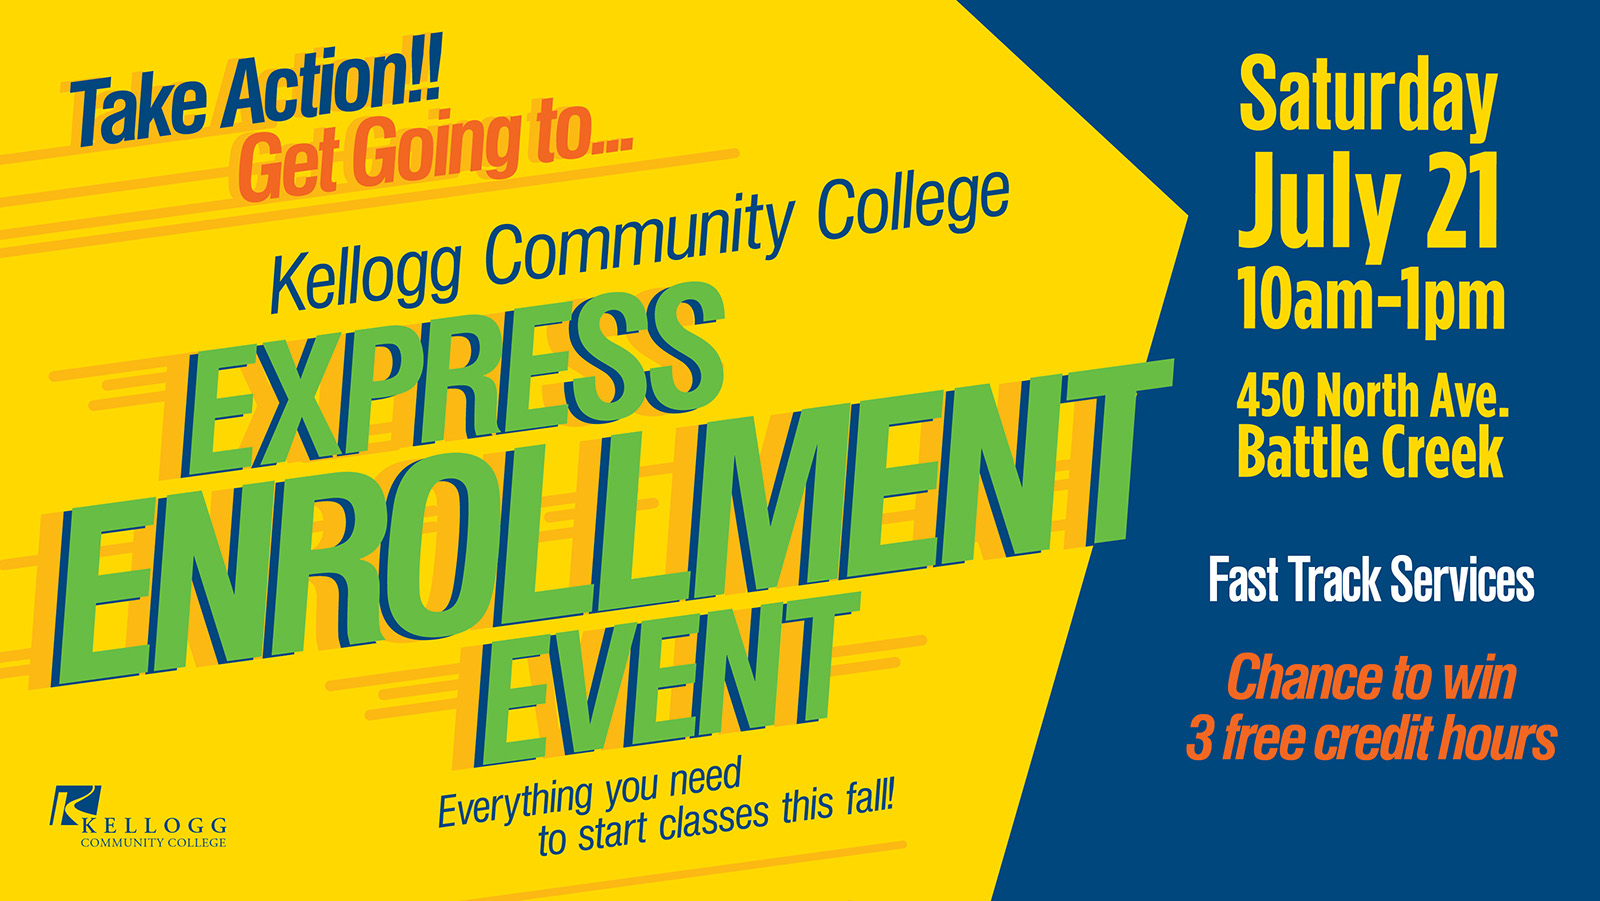 A text slide promoting KCC's Express Enrollment Event, scheduled for 10 a.m. to 1 p.m. July 21 on KCC's North Avenue campus in Battle Creek.